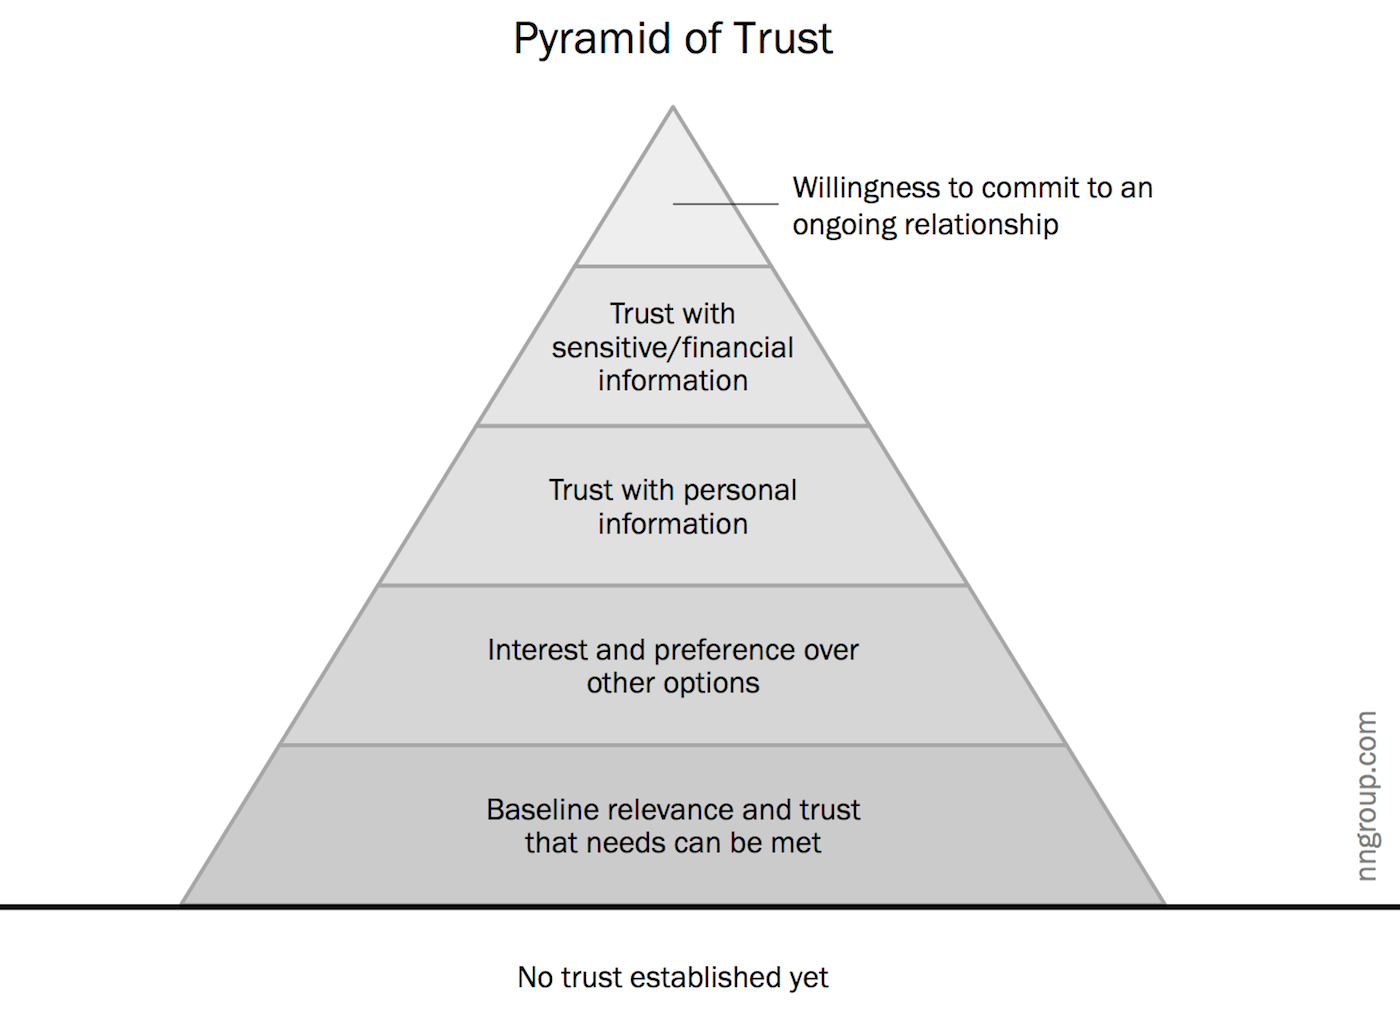 The Pyramid of Trust